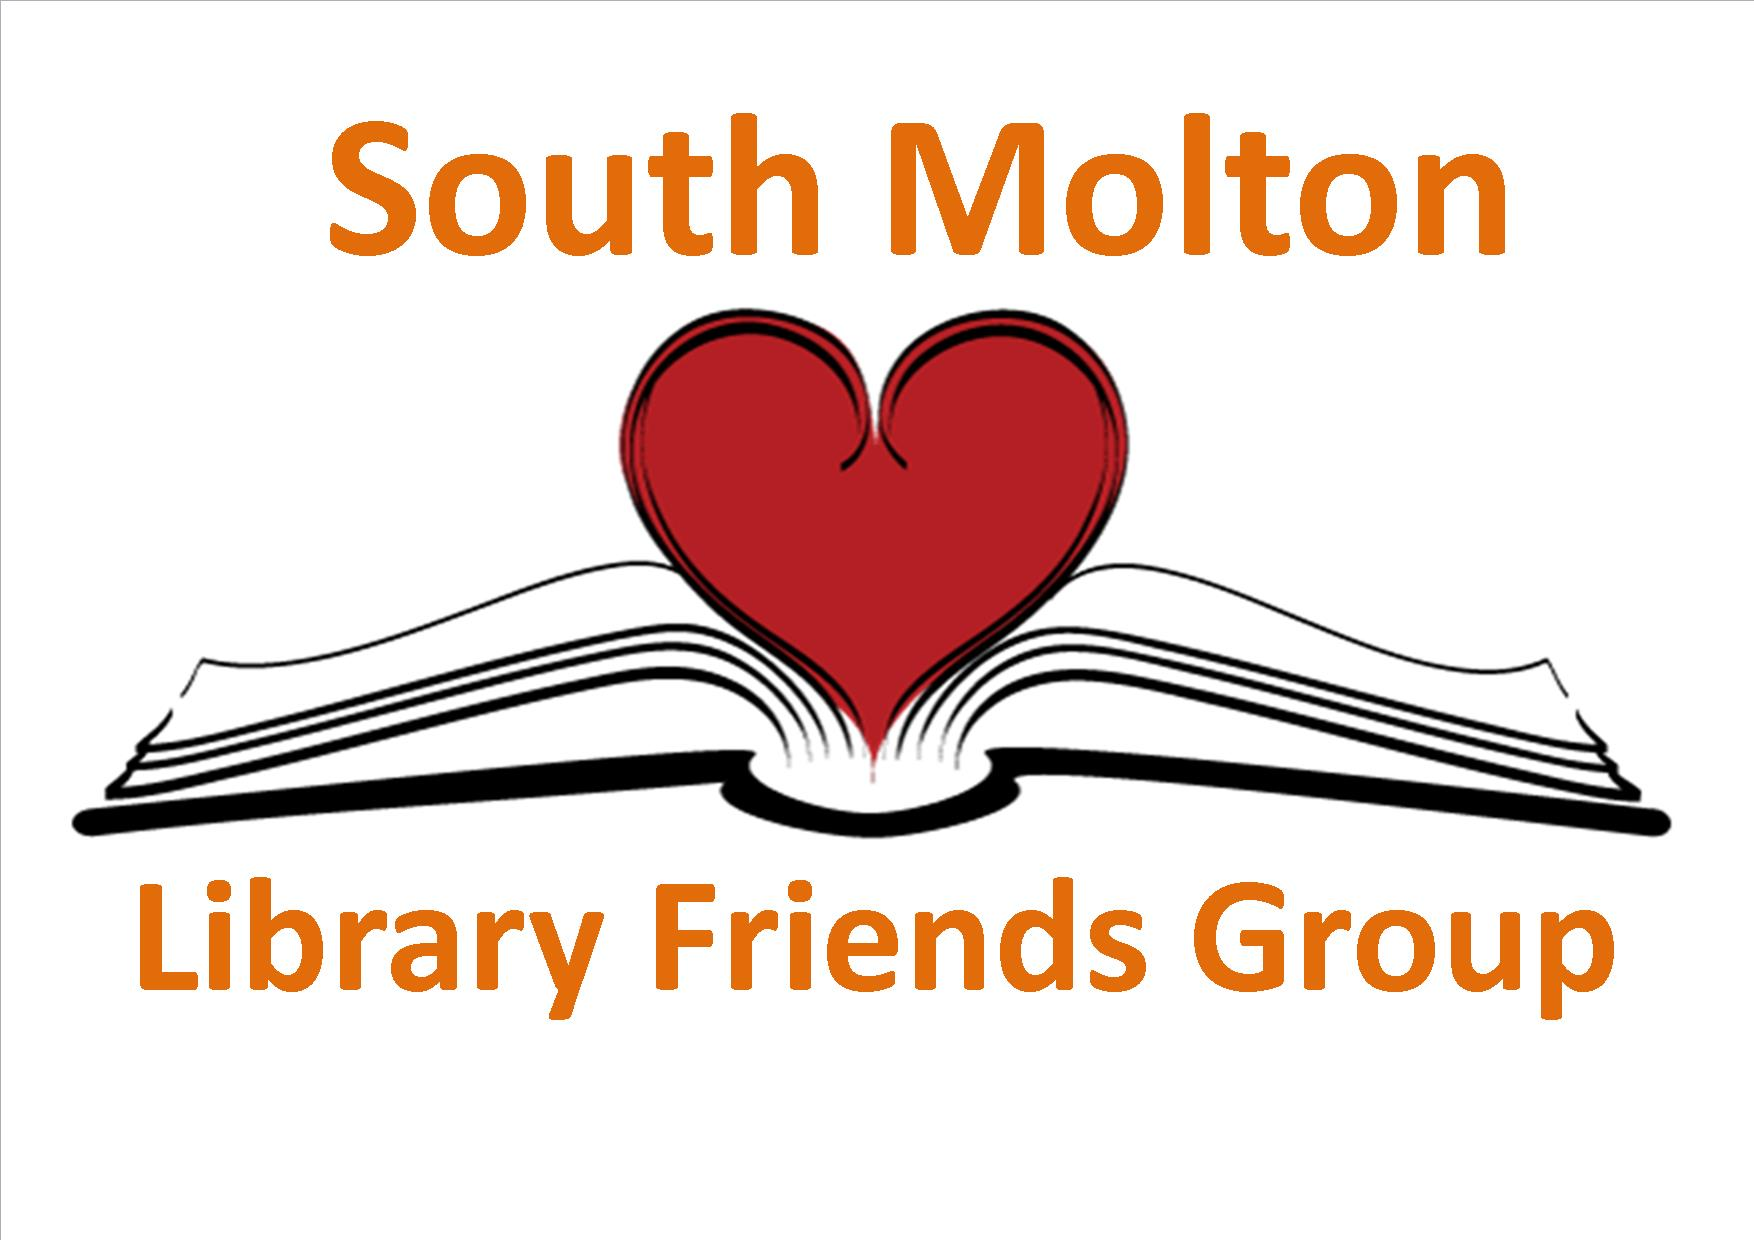 Everyone welcome to the Friends of South Molton Library Meeting. Hear about what the library has been up to and plans for future events.